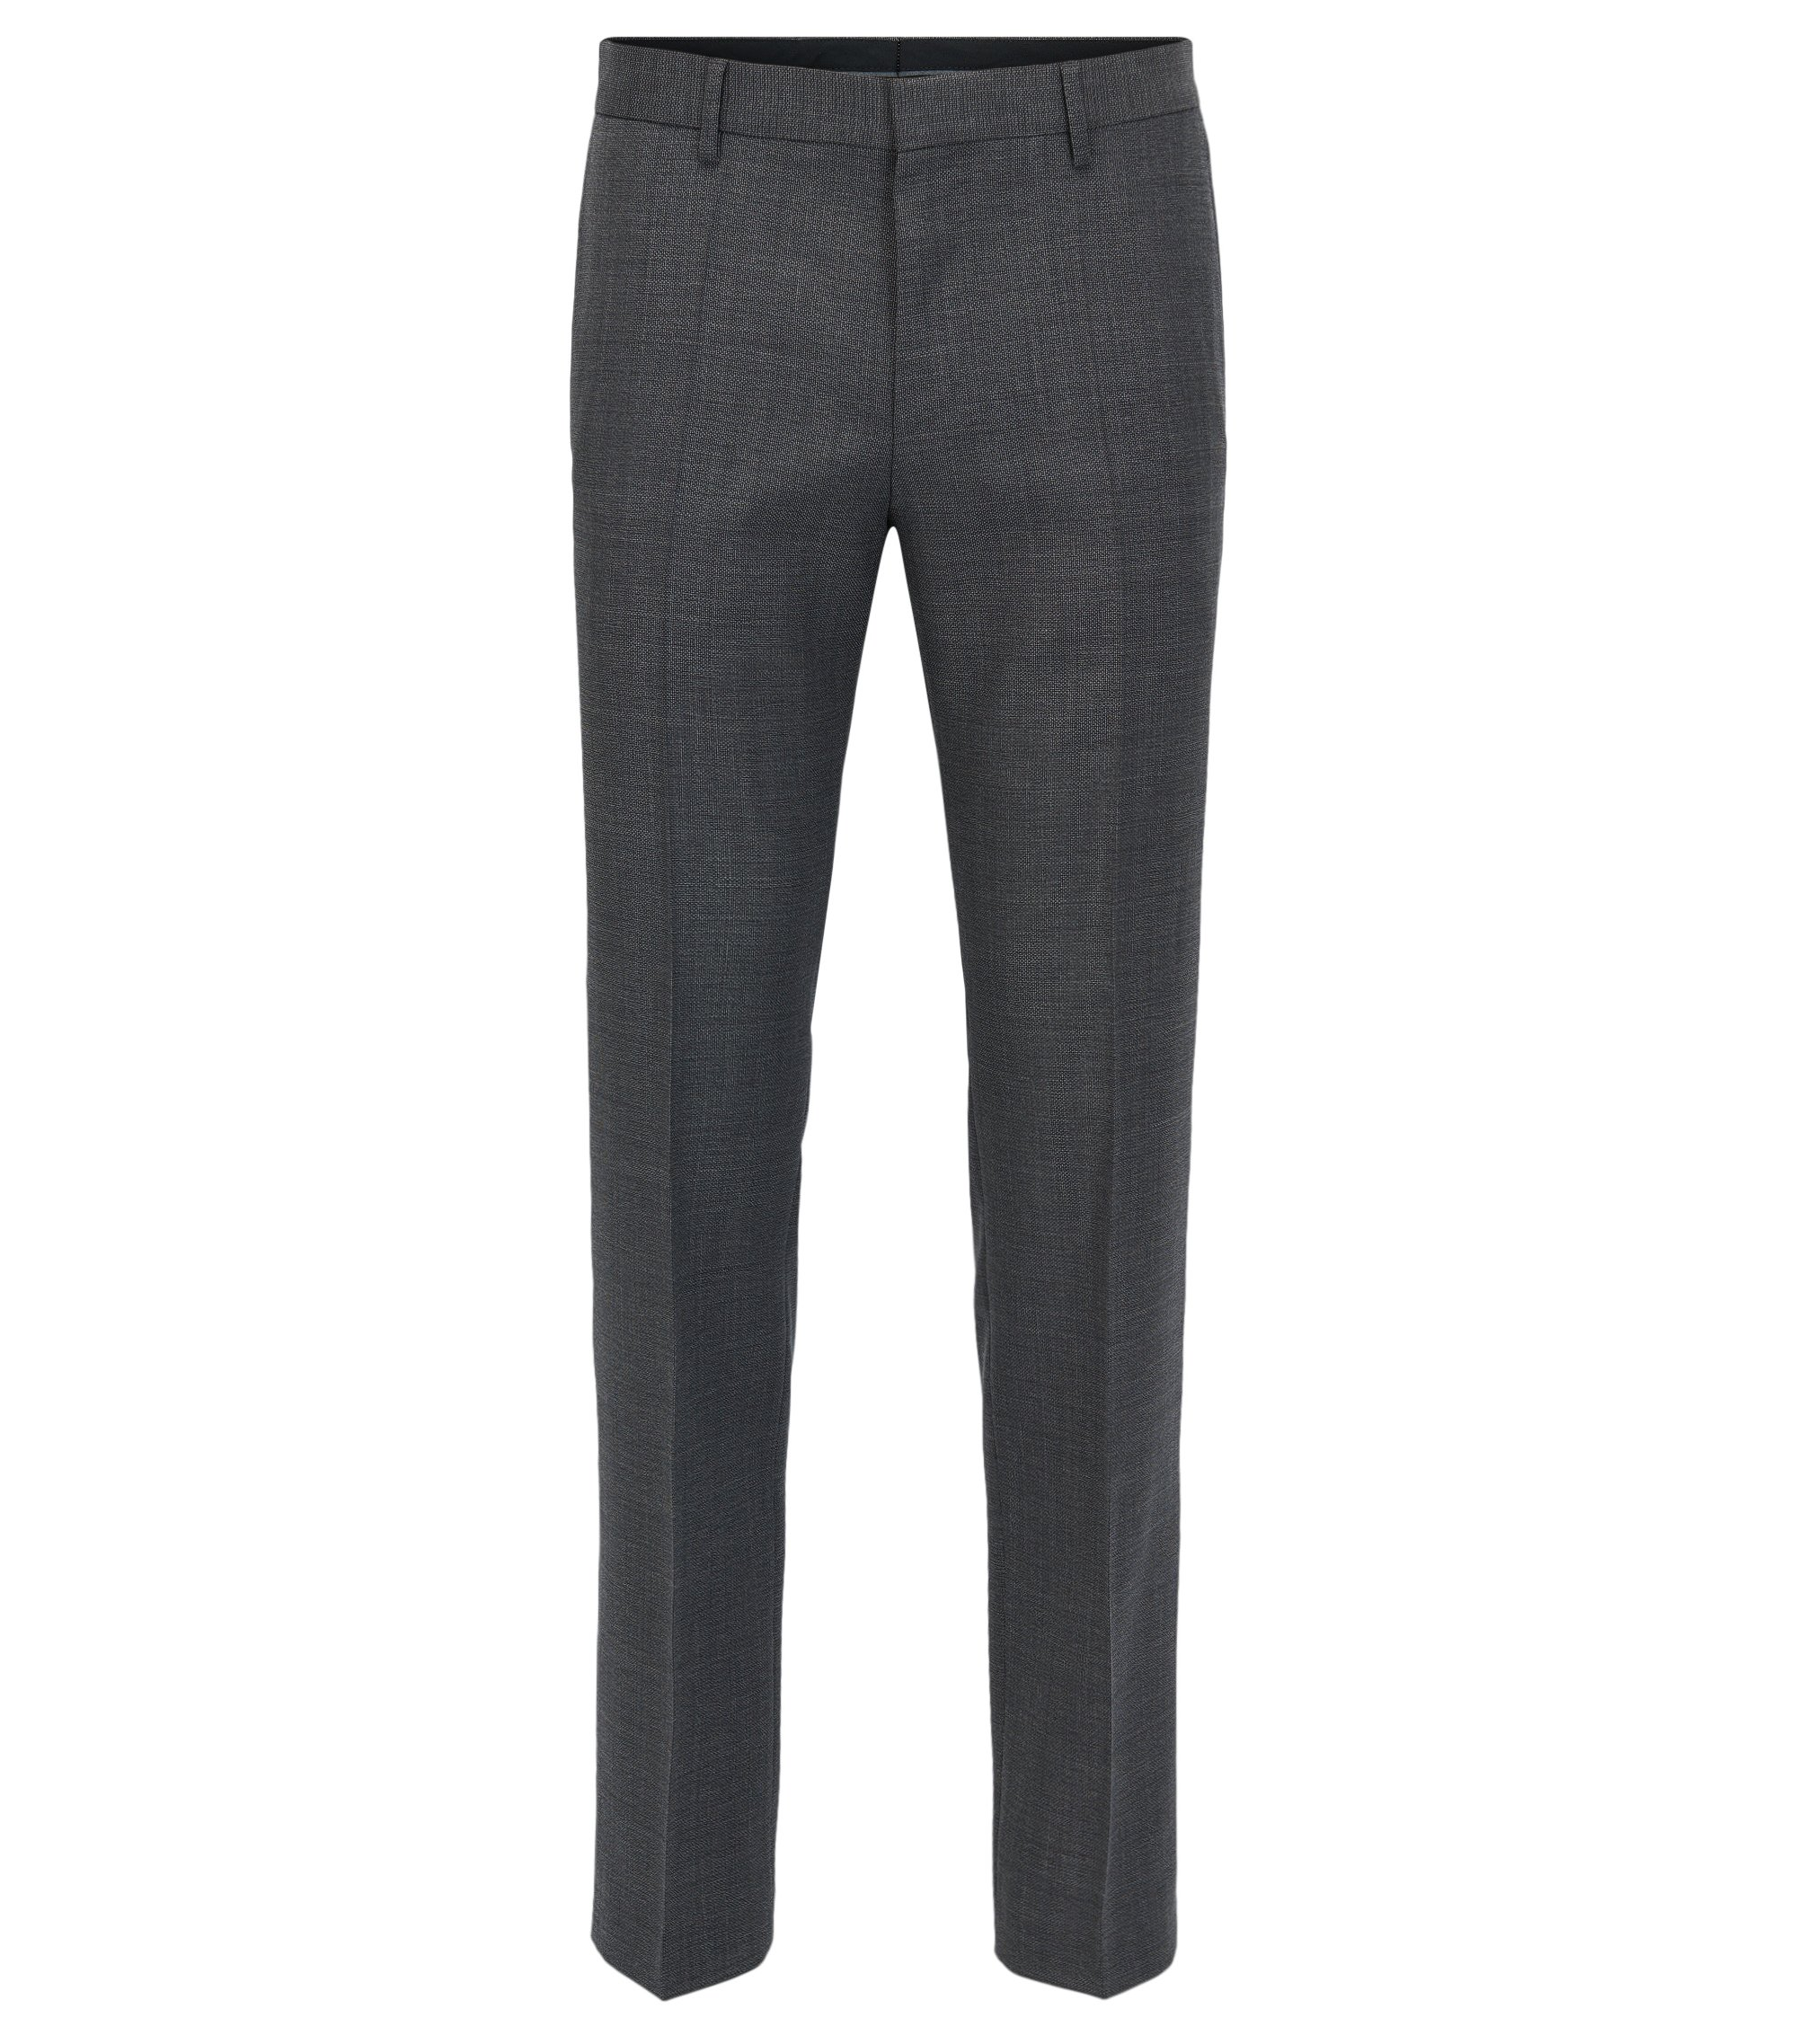 Piped Virgin Wool Dress Pant, Slim Fit | Blake, Open Grey